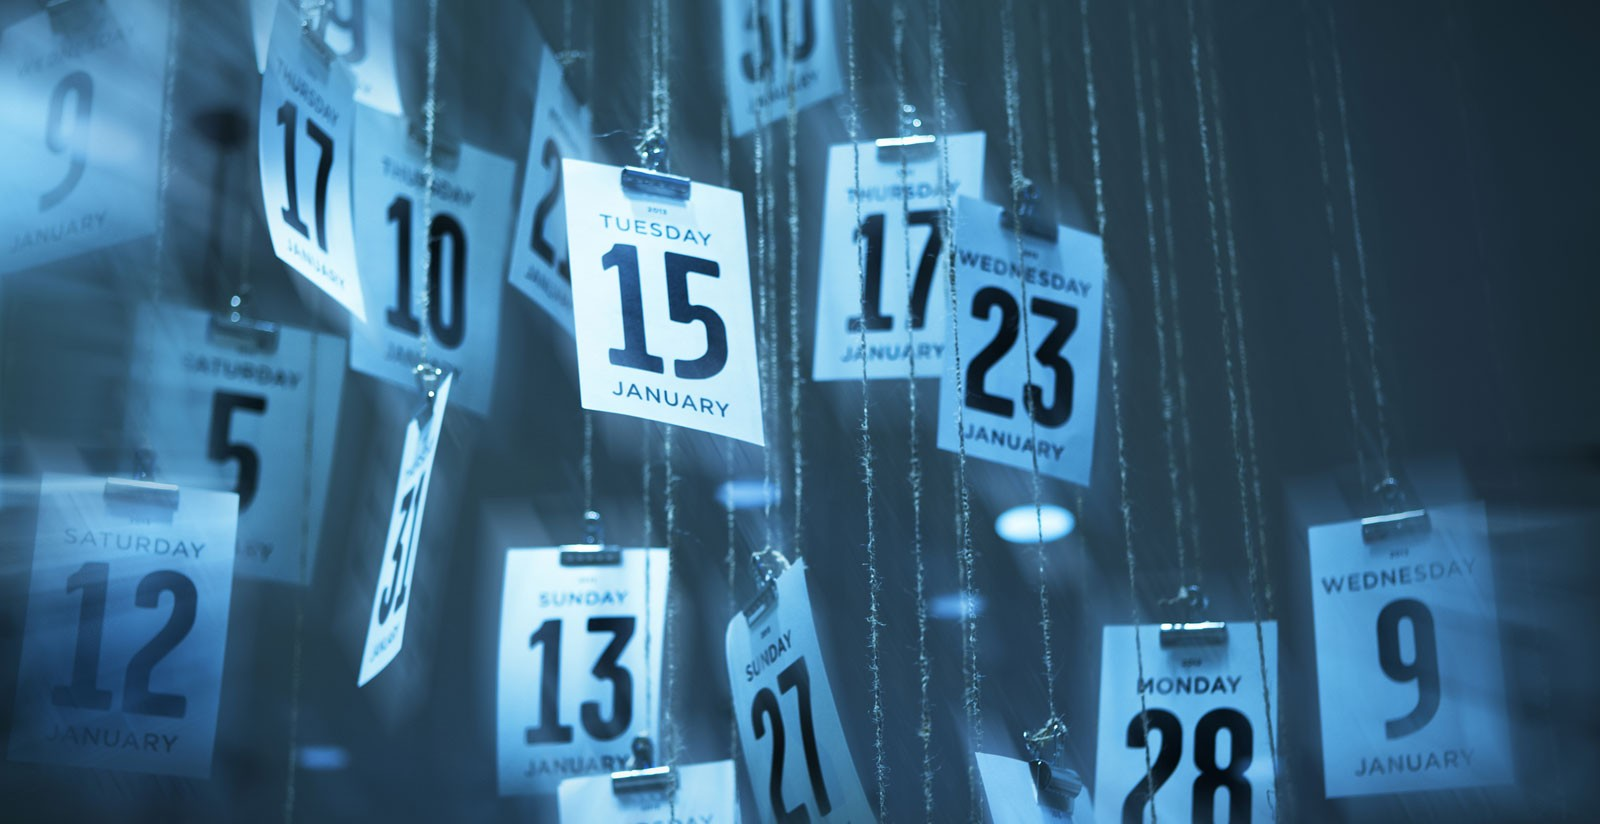 Today's Numbers: Finding Your Best Days With Numerology